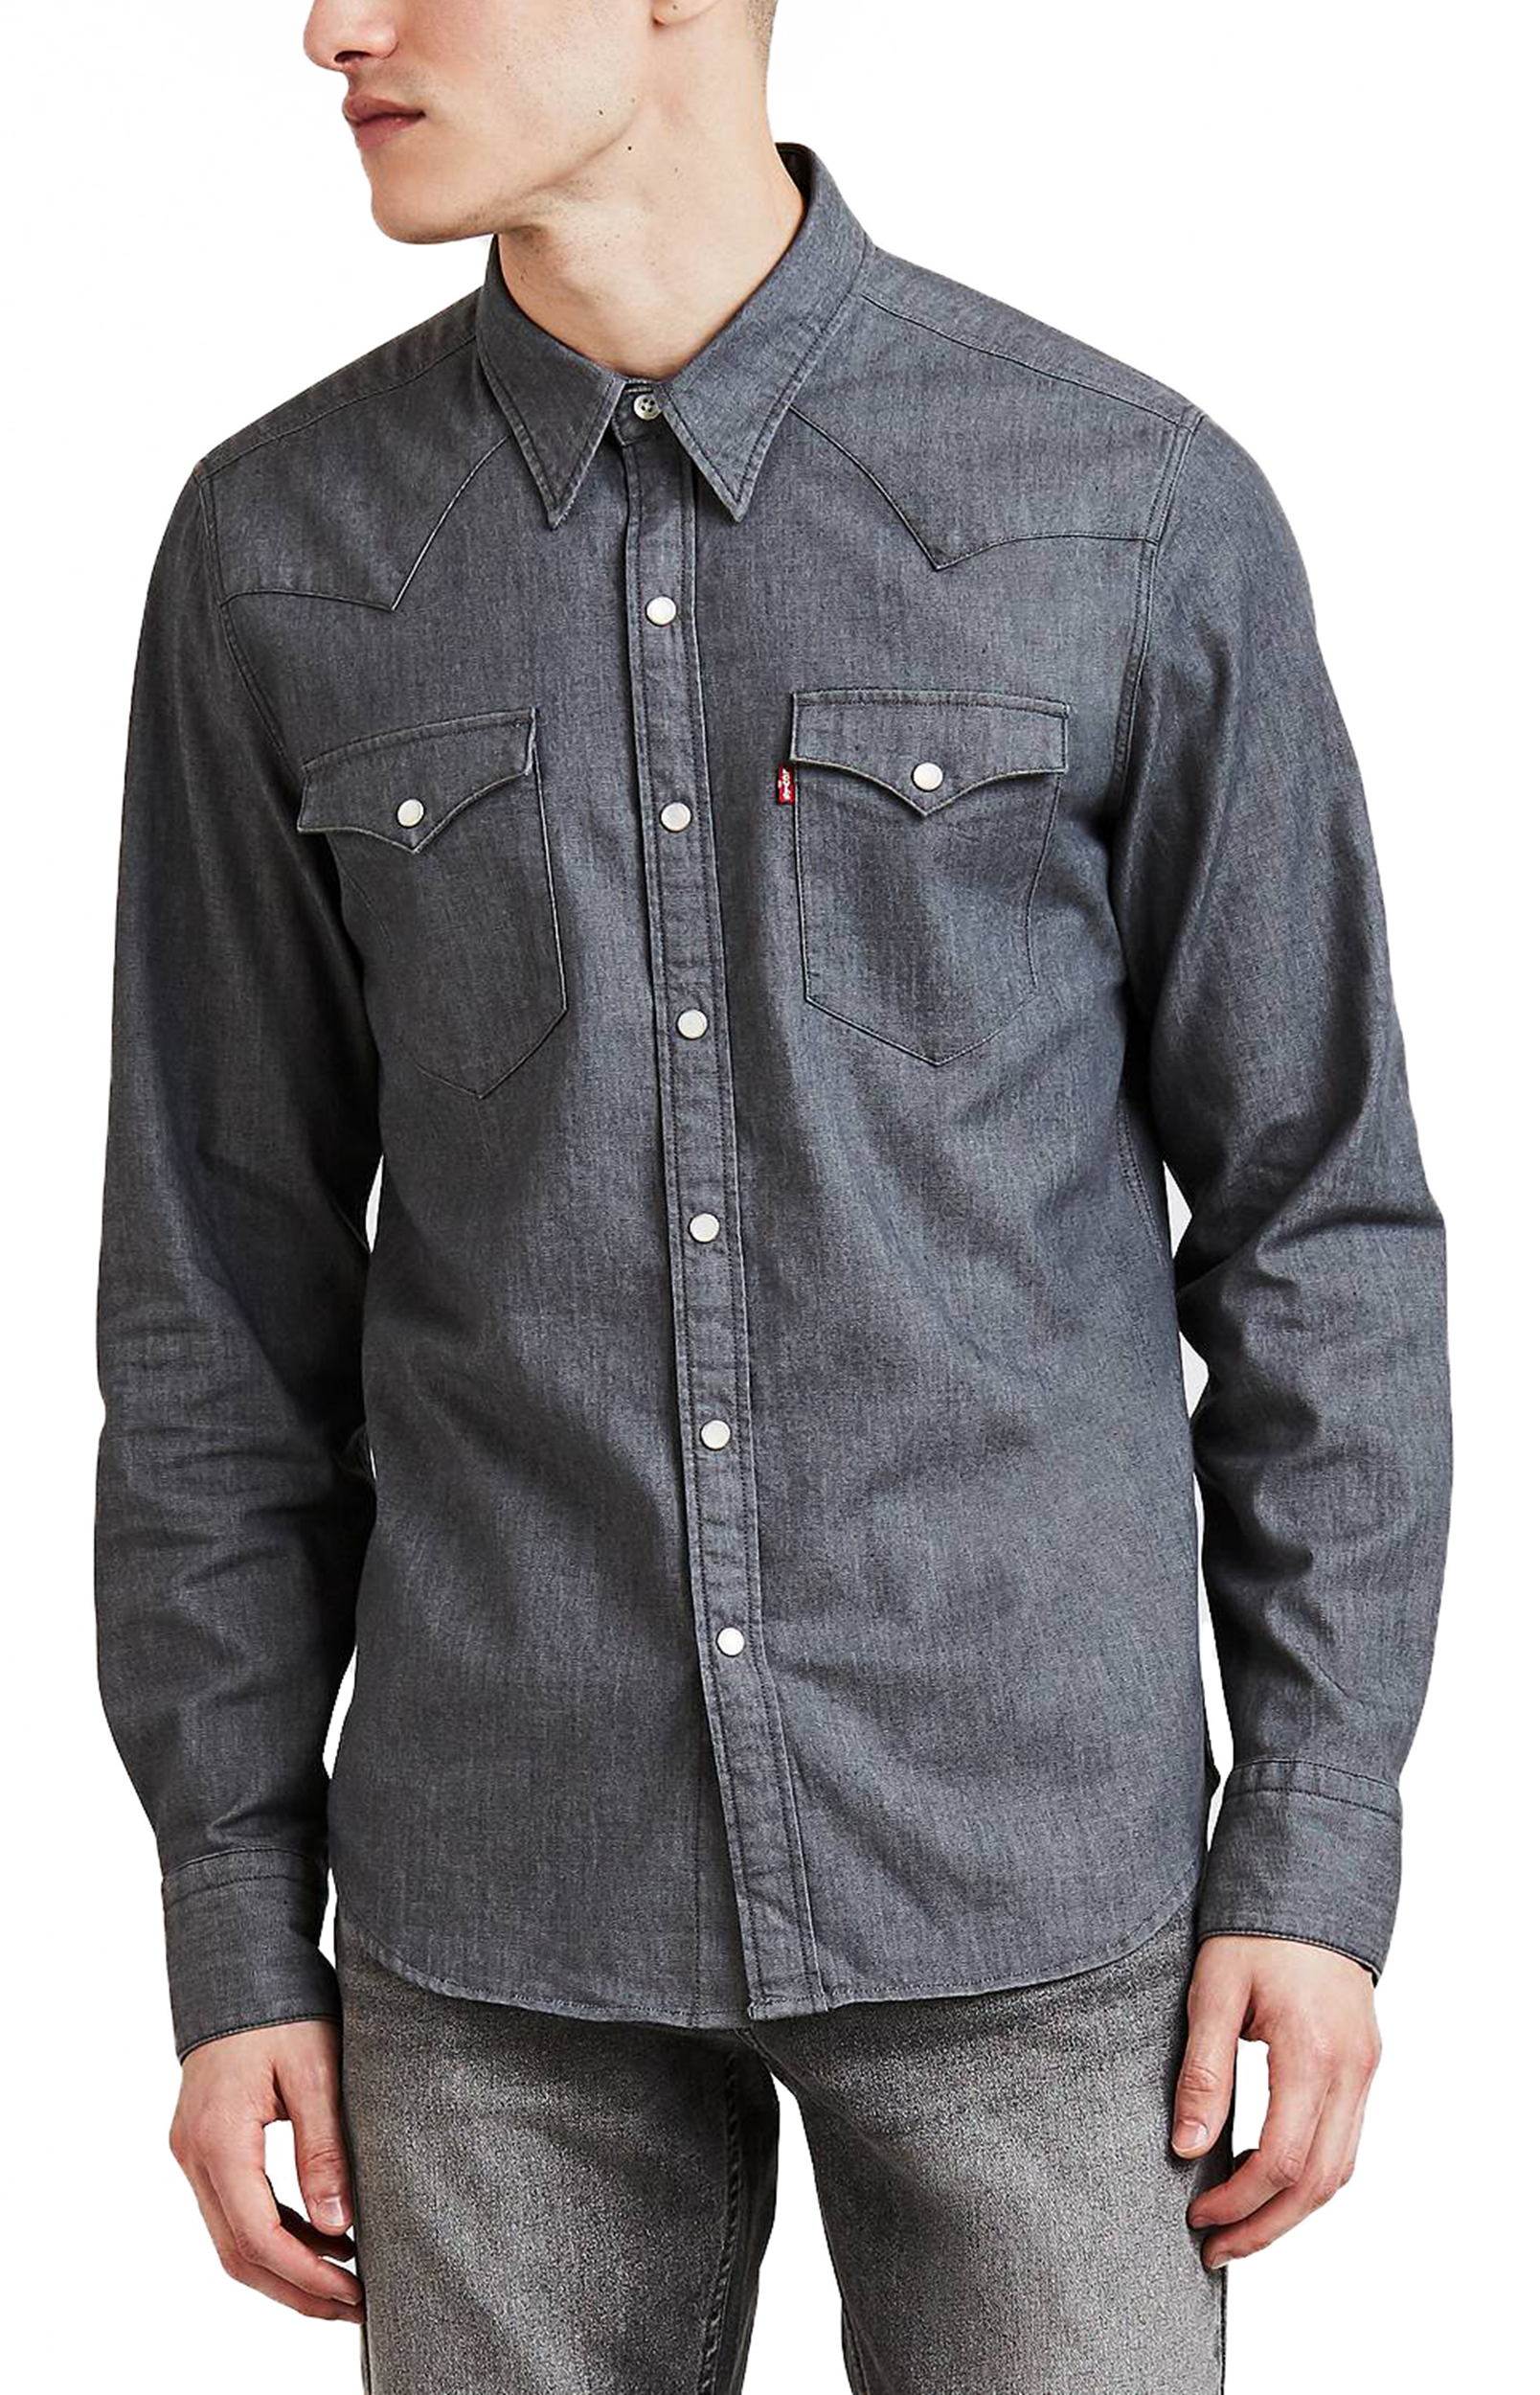 e3b3b325c7 Click on the Image to Enlarge. More Details. LEVIS Barstow long sleeve  stretch denim shirt ...